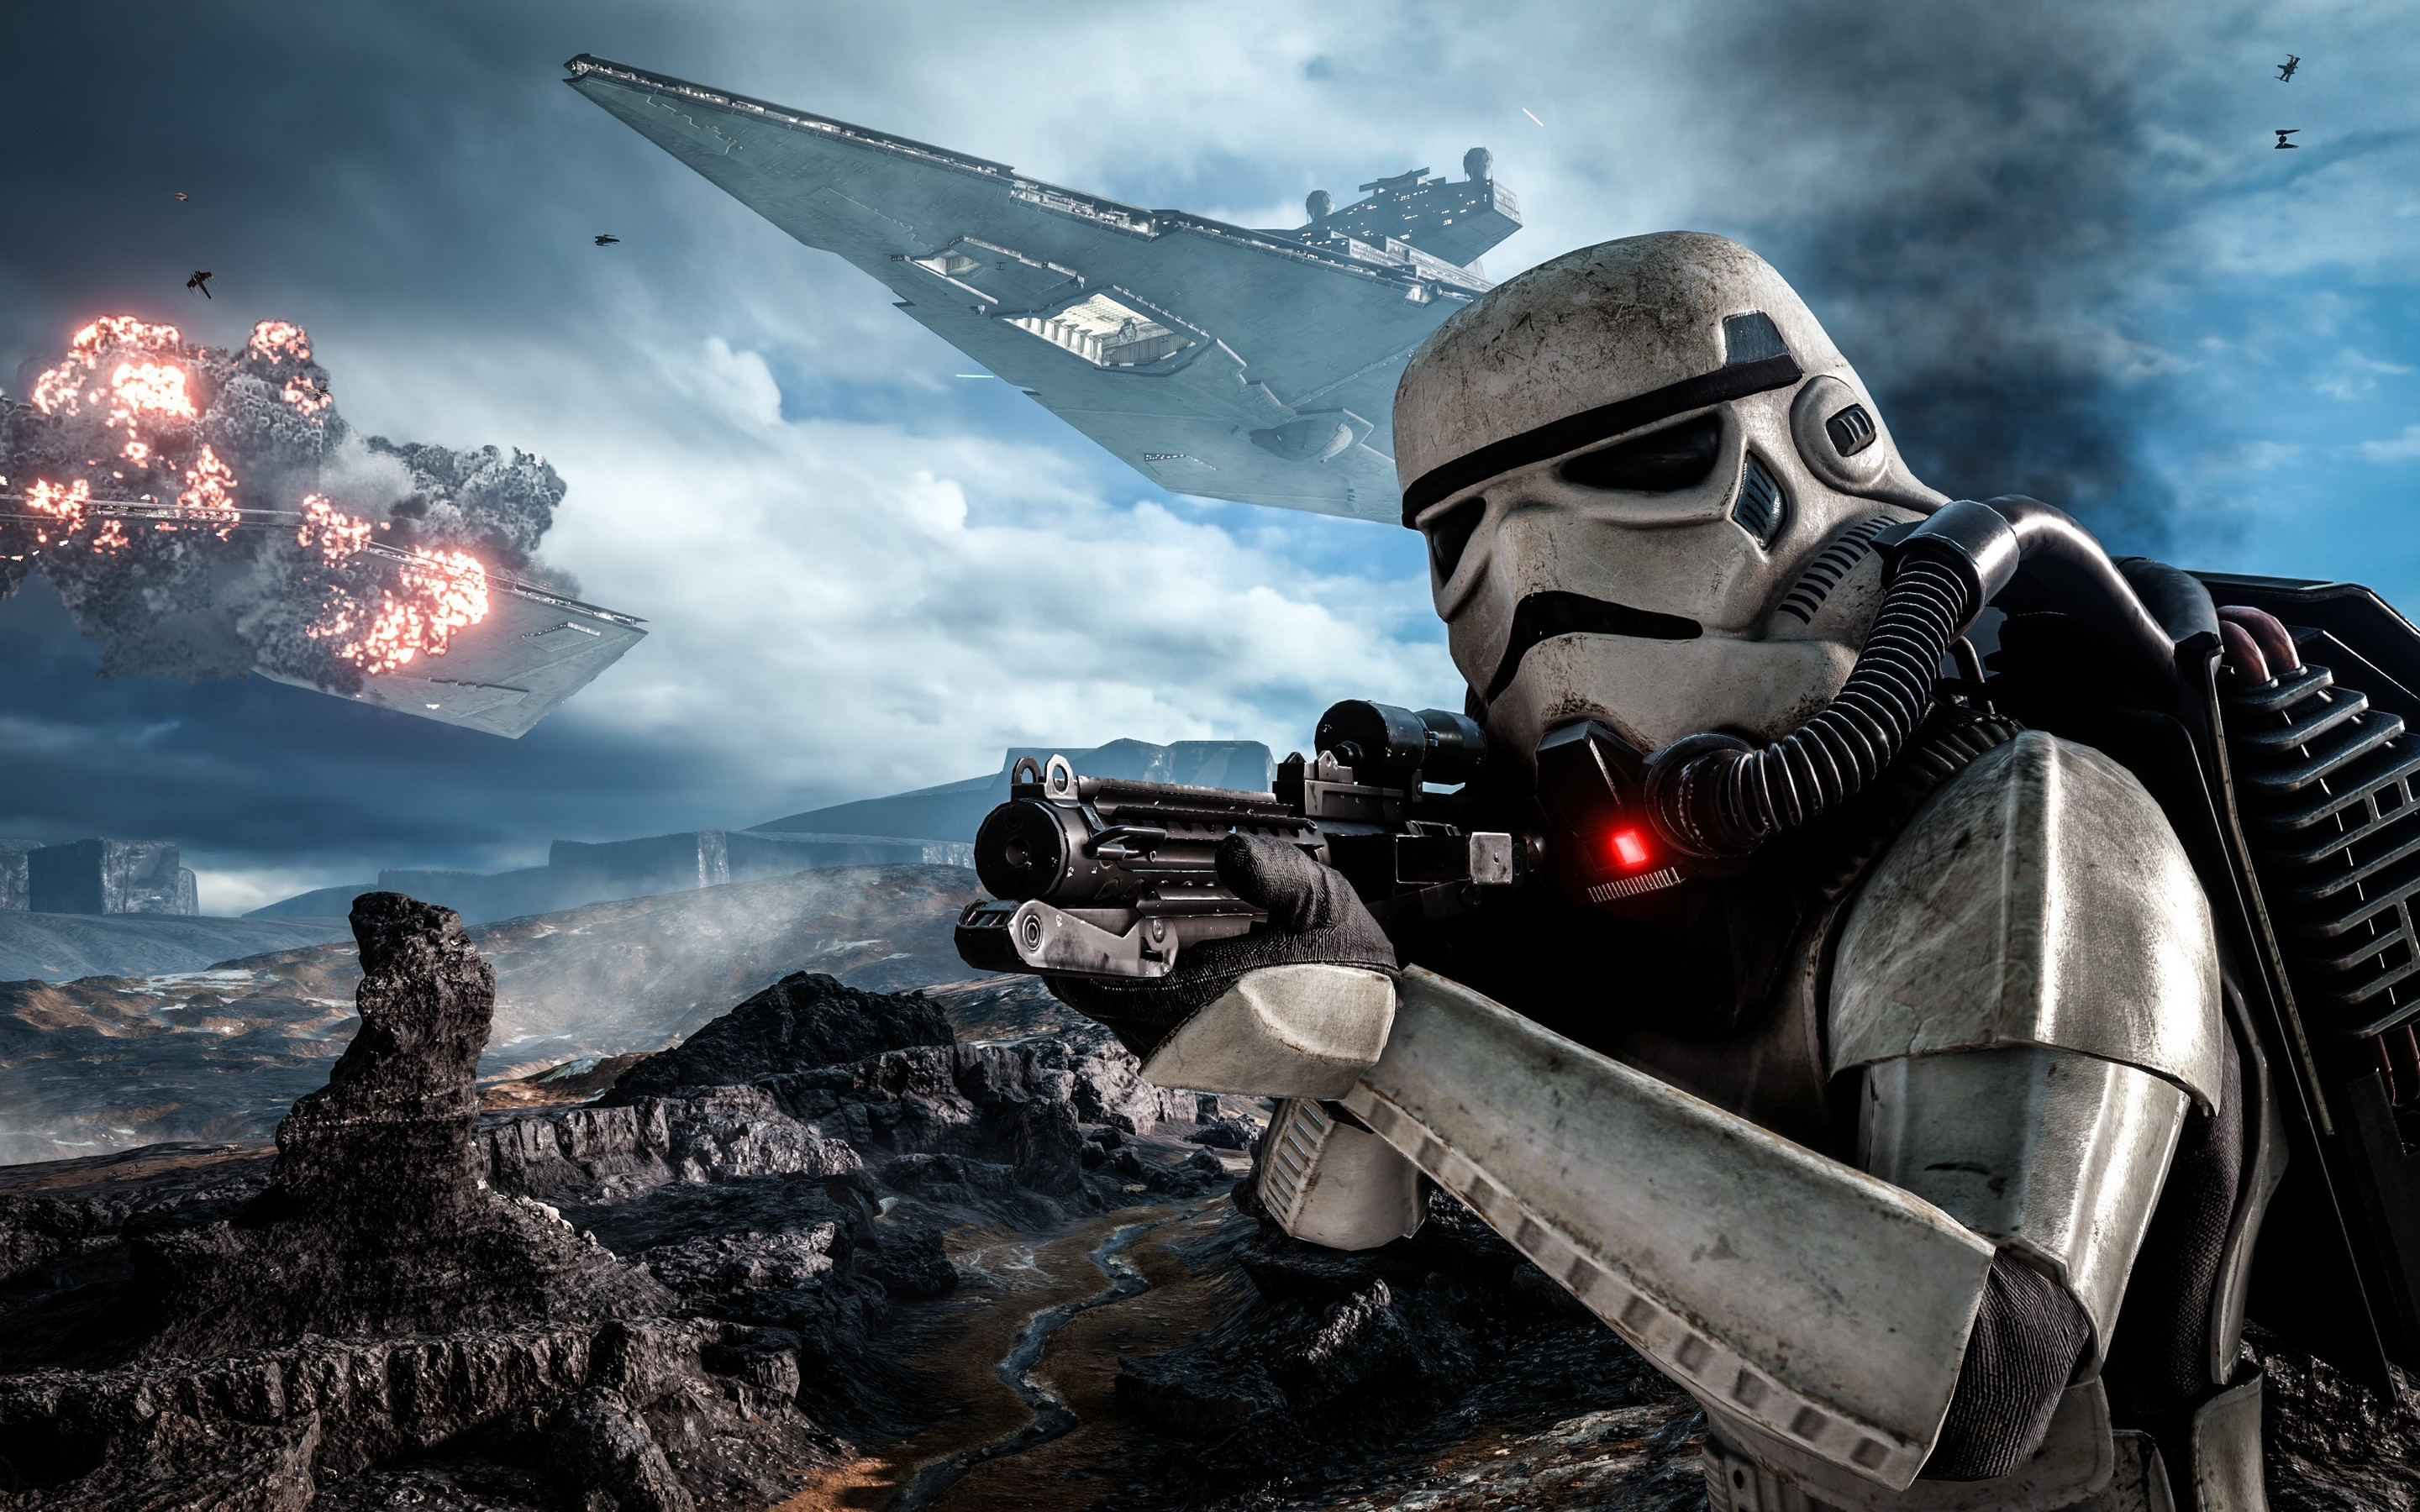 138 Star Wars Battlefront (2015) HD Wallpapers | Backgrounds